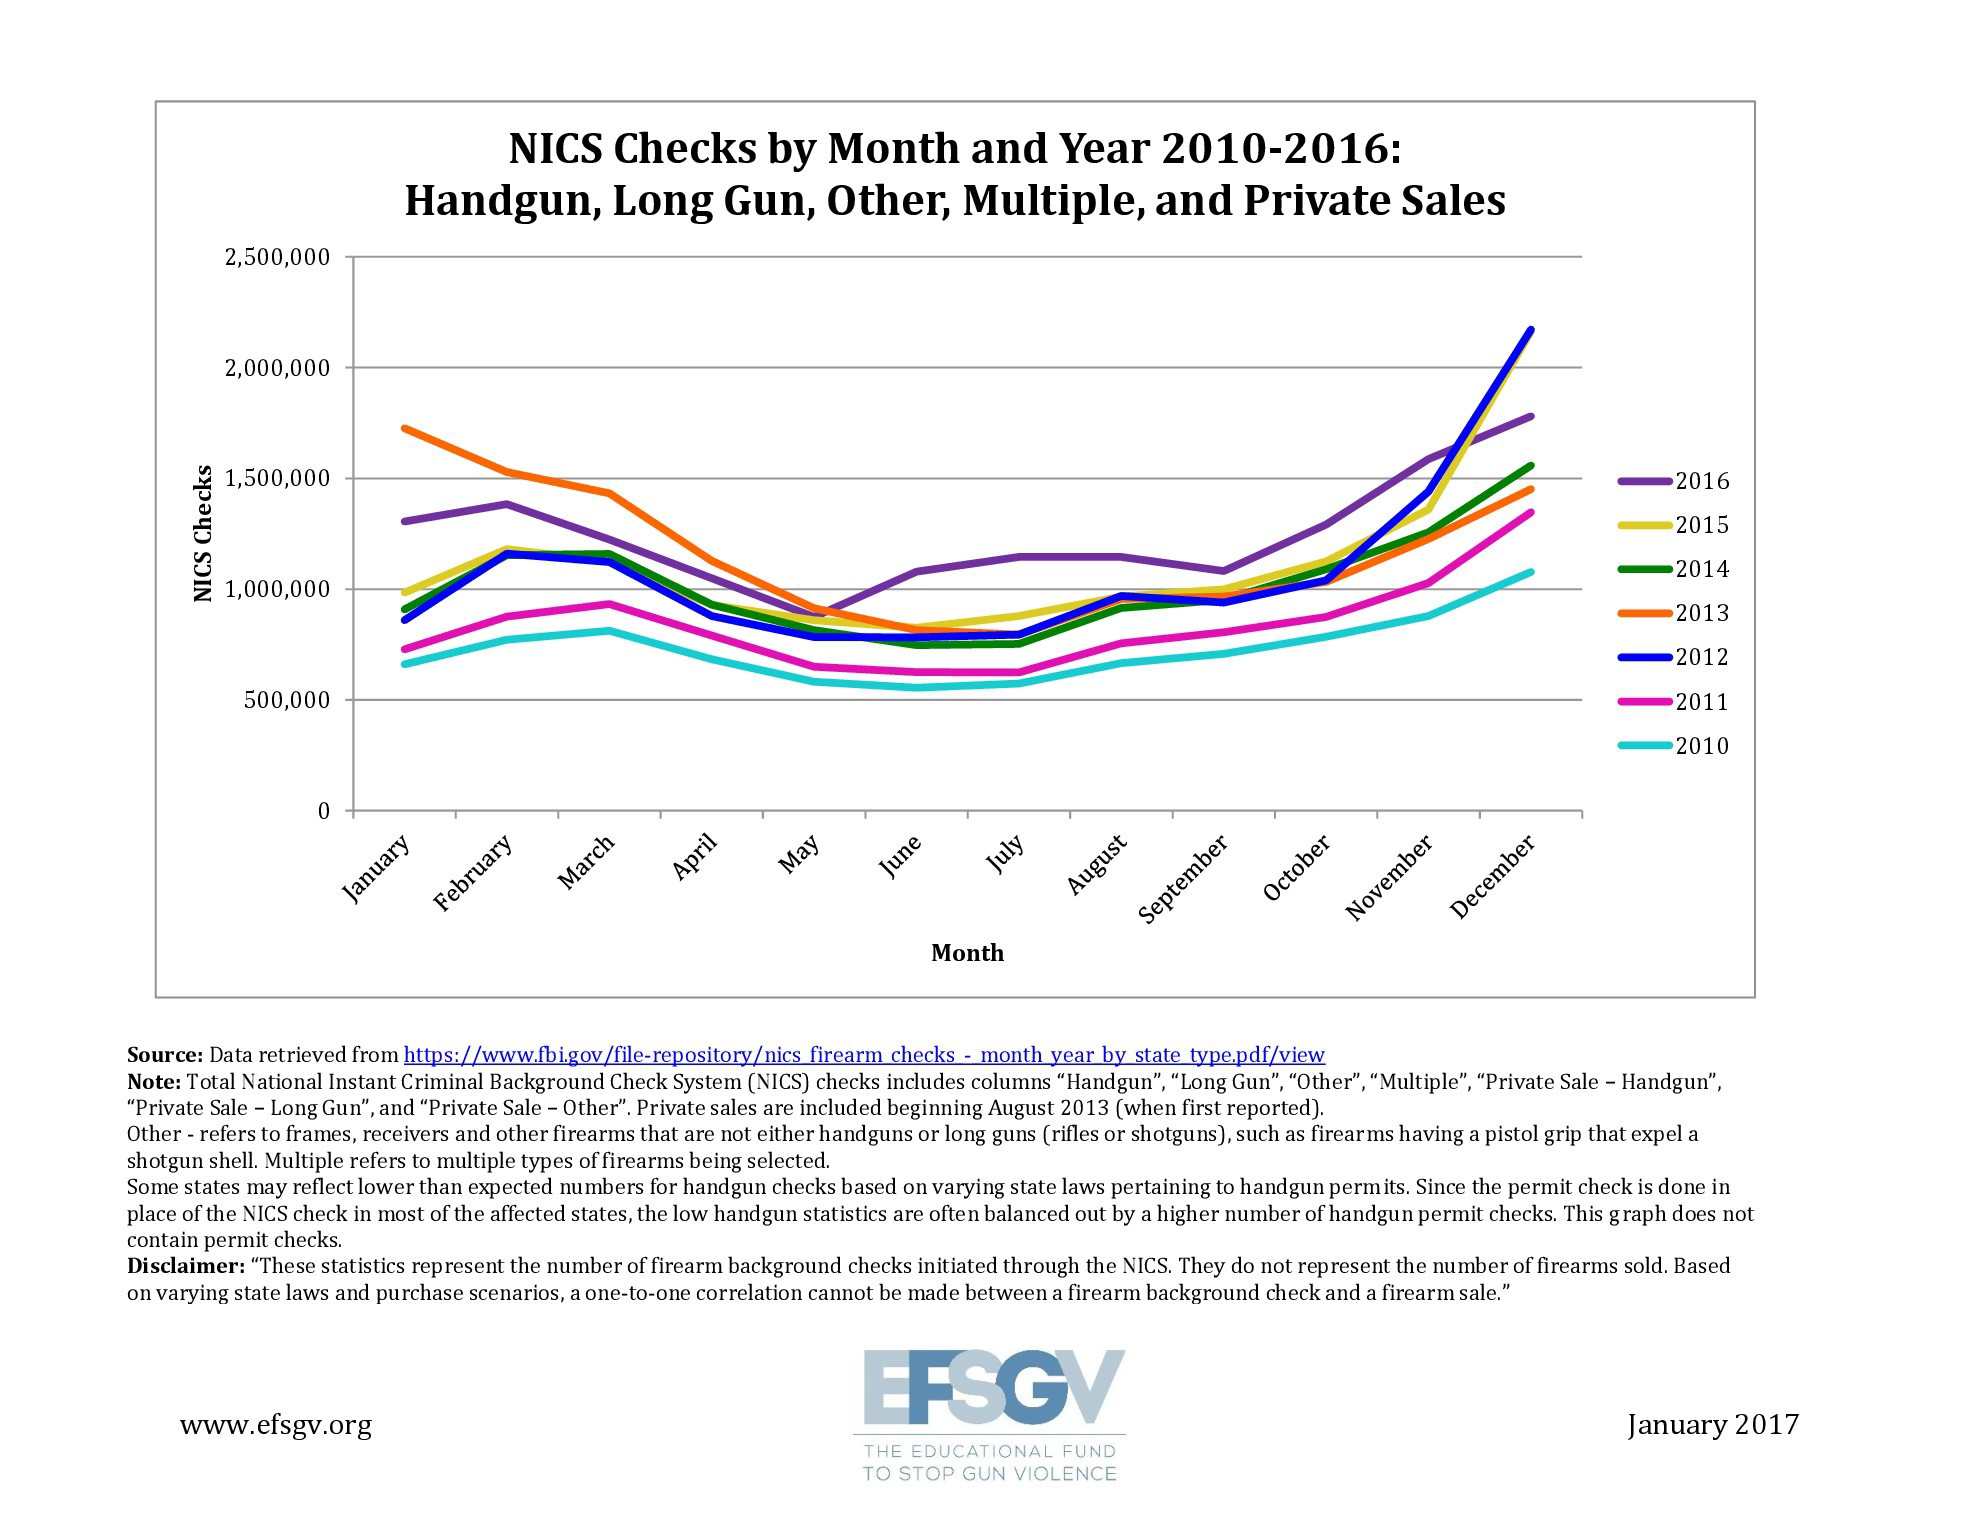 Enough speculation nics background check numbers released despite the lower numbers of nics checks in these categories for december 2016 the year as a whole had the highest number of nics checks overall in those pooptronica